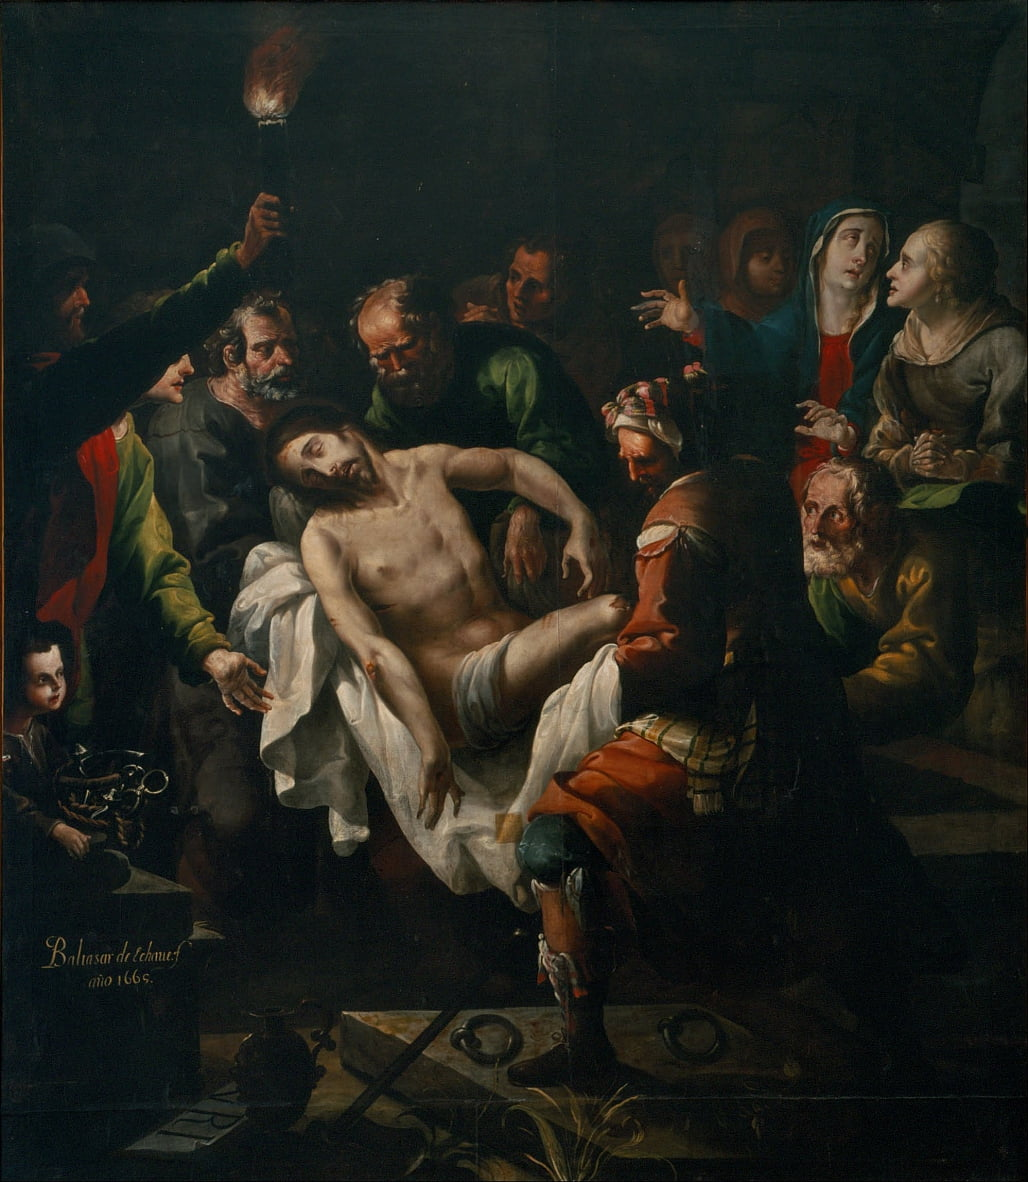 The Burial of Christ by Baltasar de Echave y Rioja